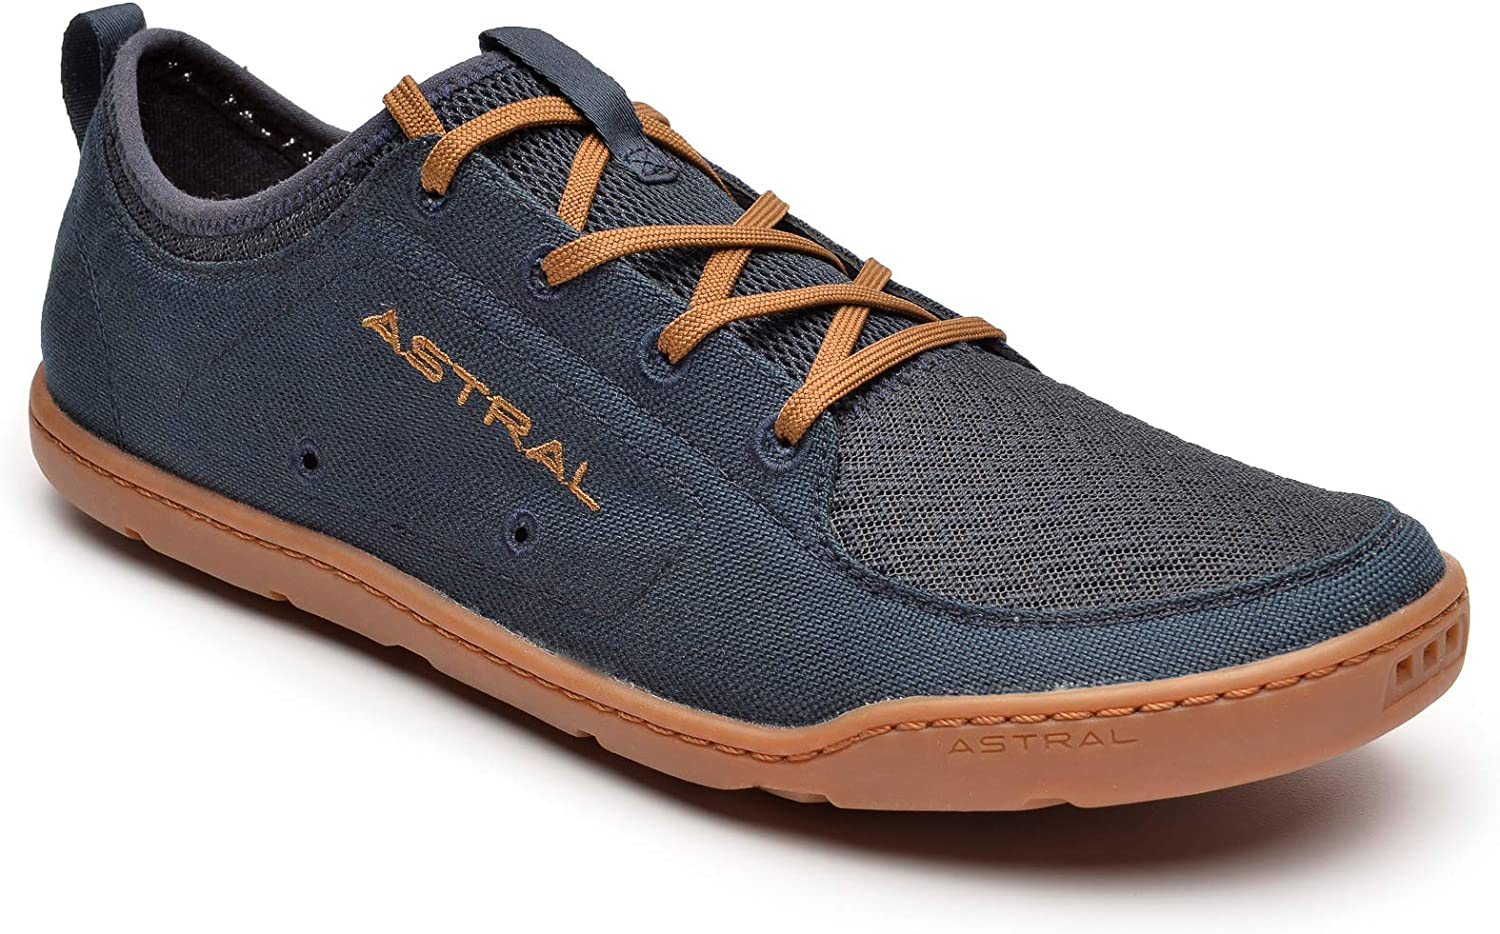 Astral Loyak Mens Low-profile Water shoes for Canoe   Kayak   Watersports